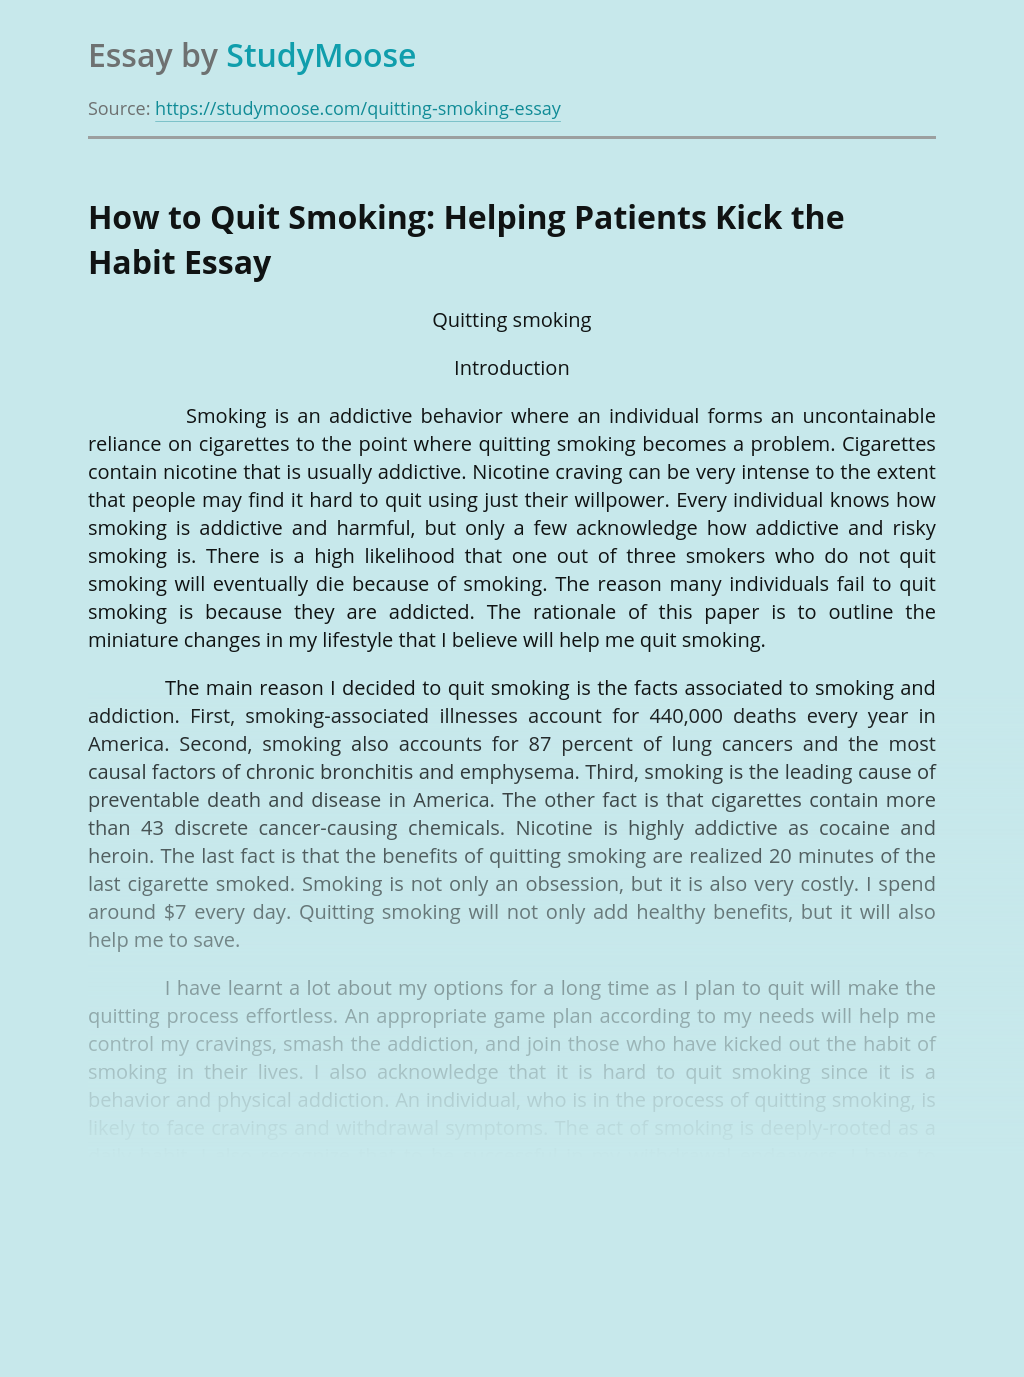 How to Quit Smoking: Helping Patients Kick the Habit